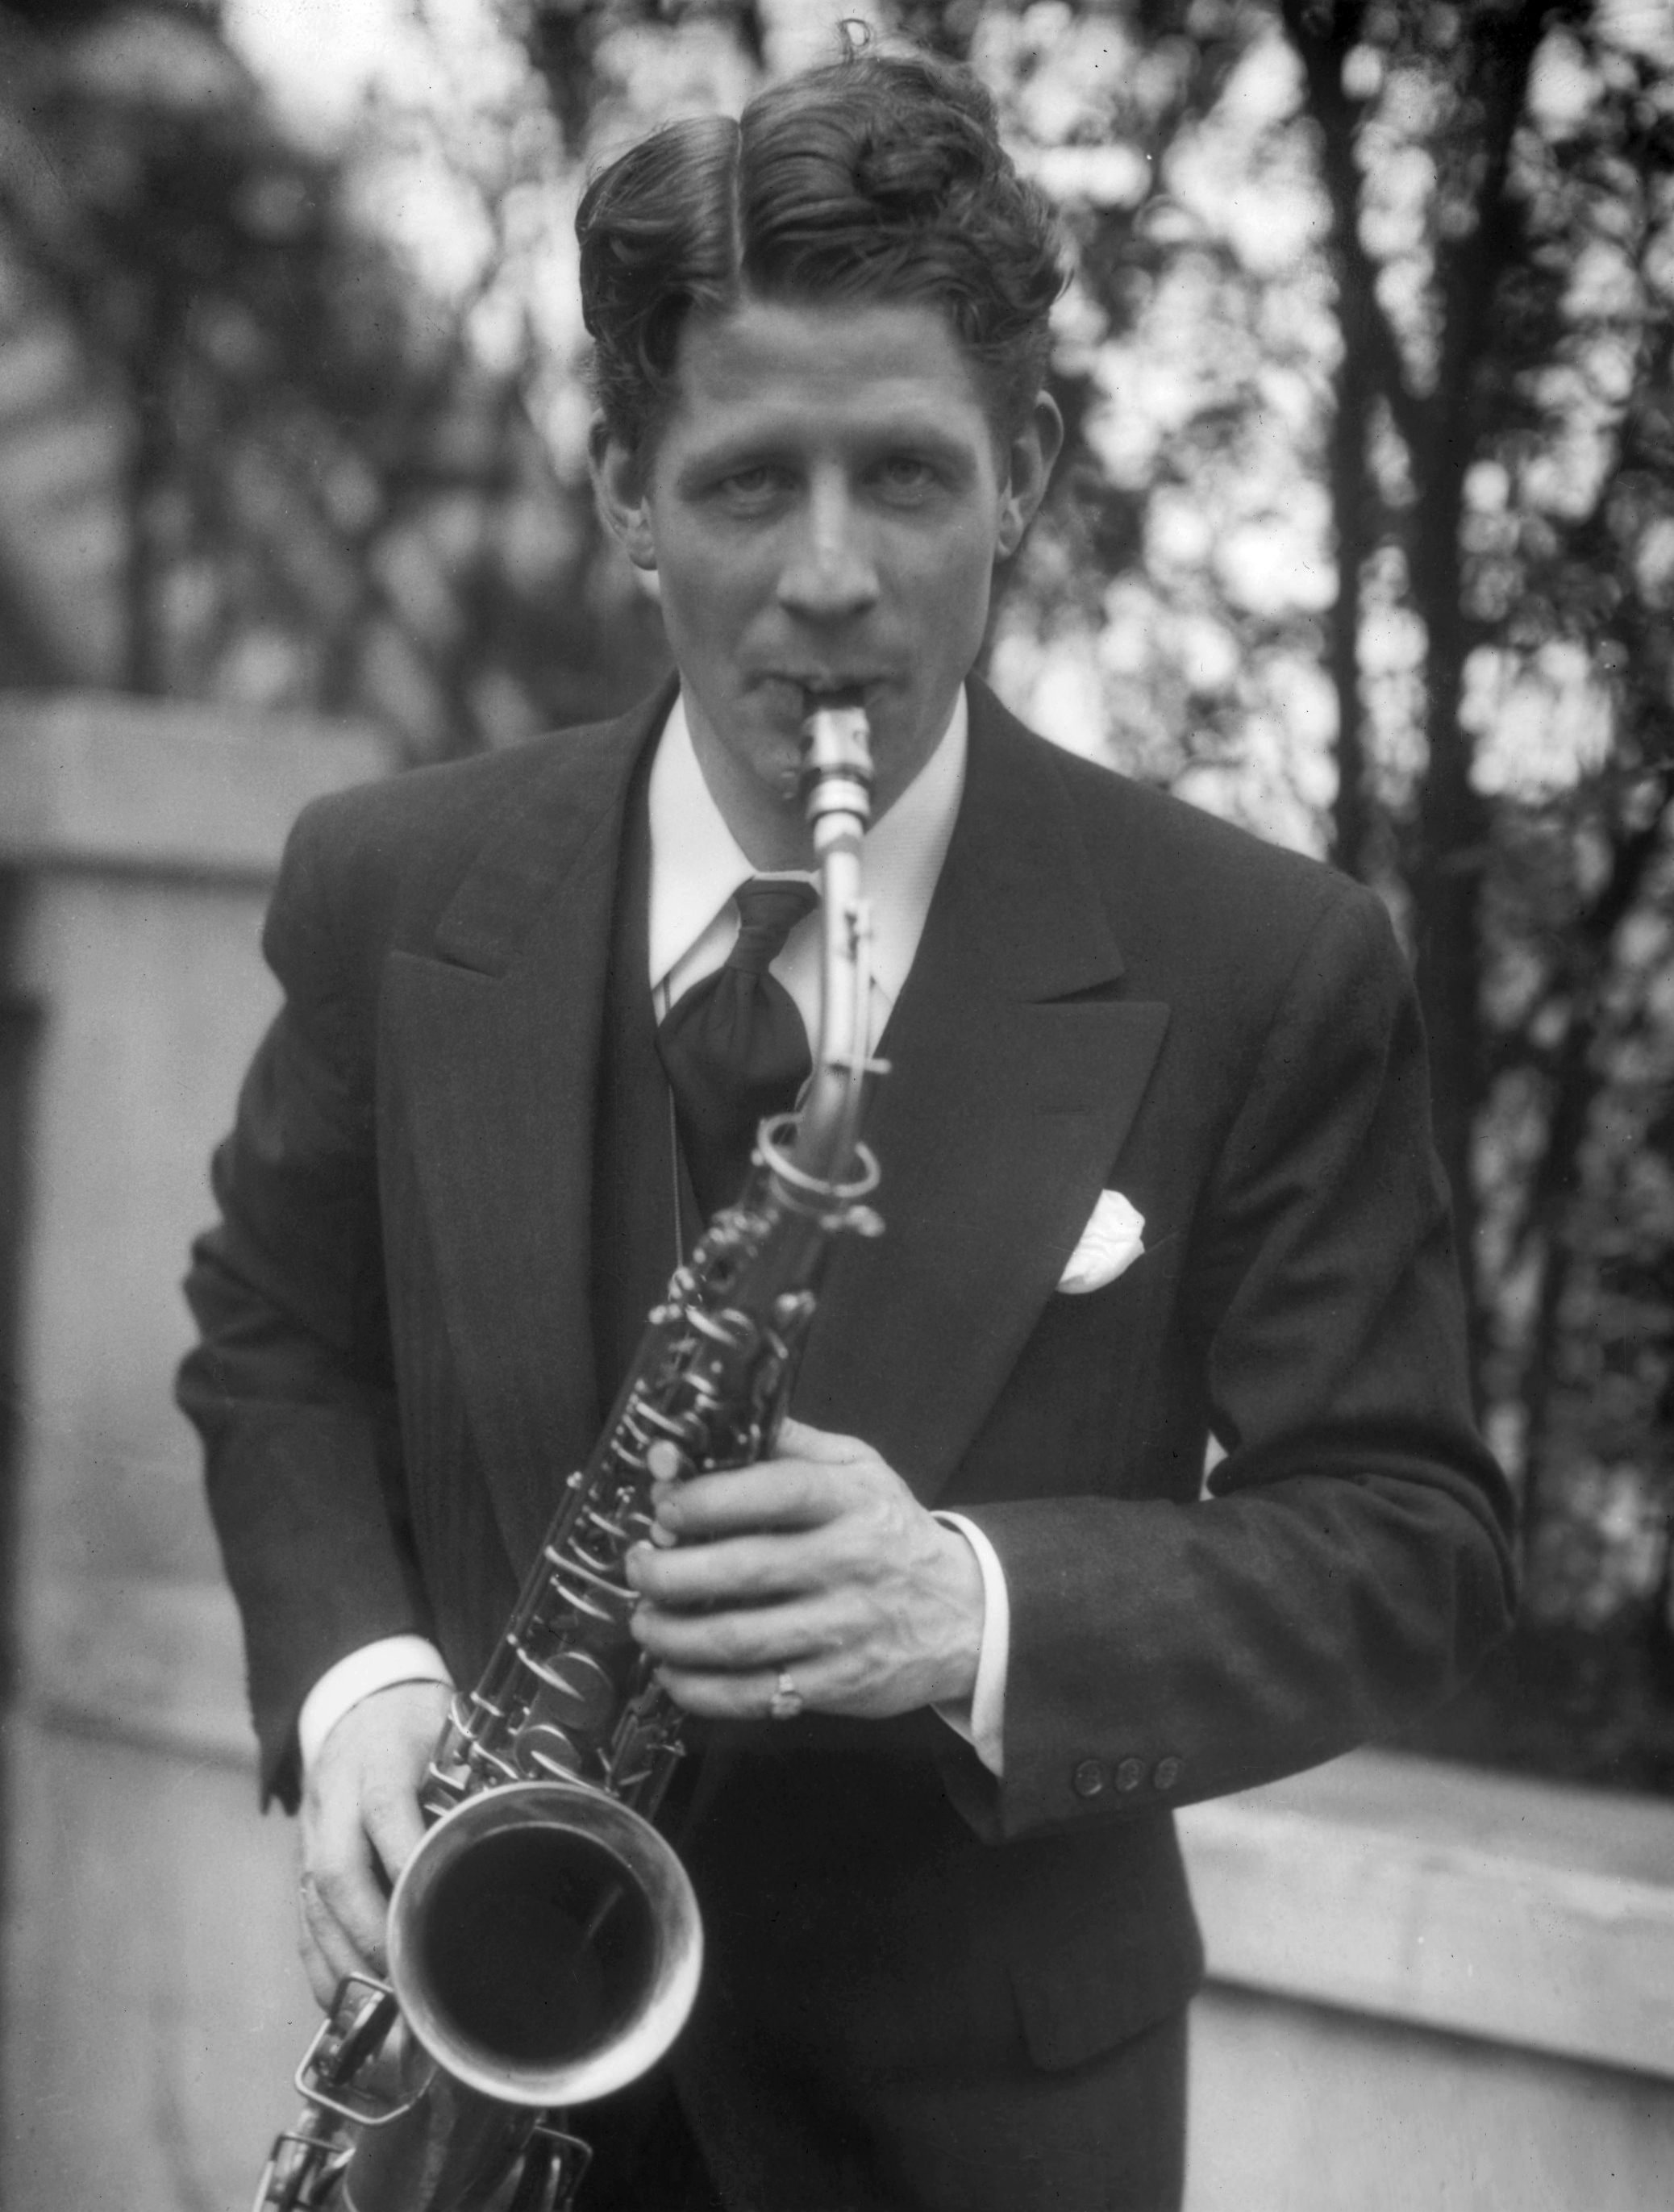 Photograph of Rudy Vallee